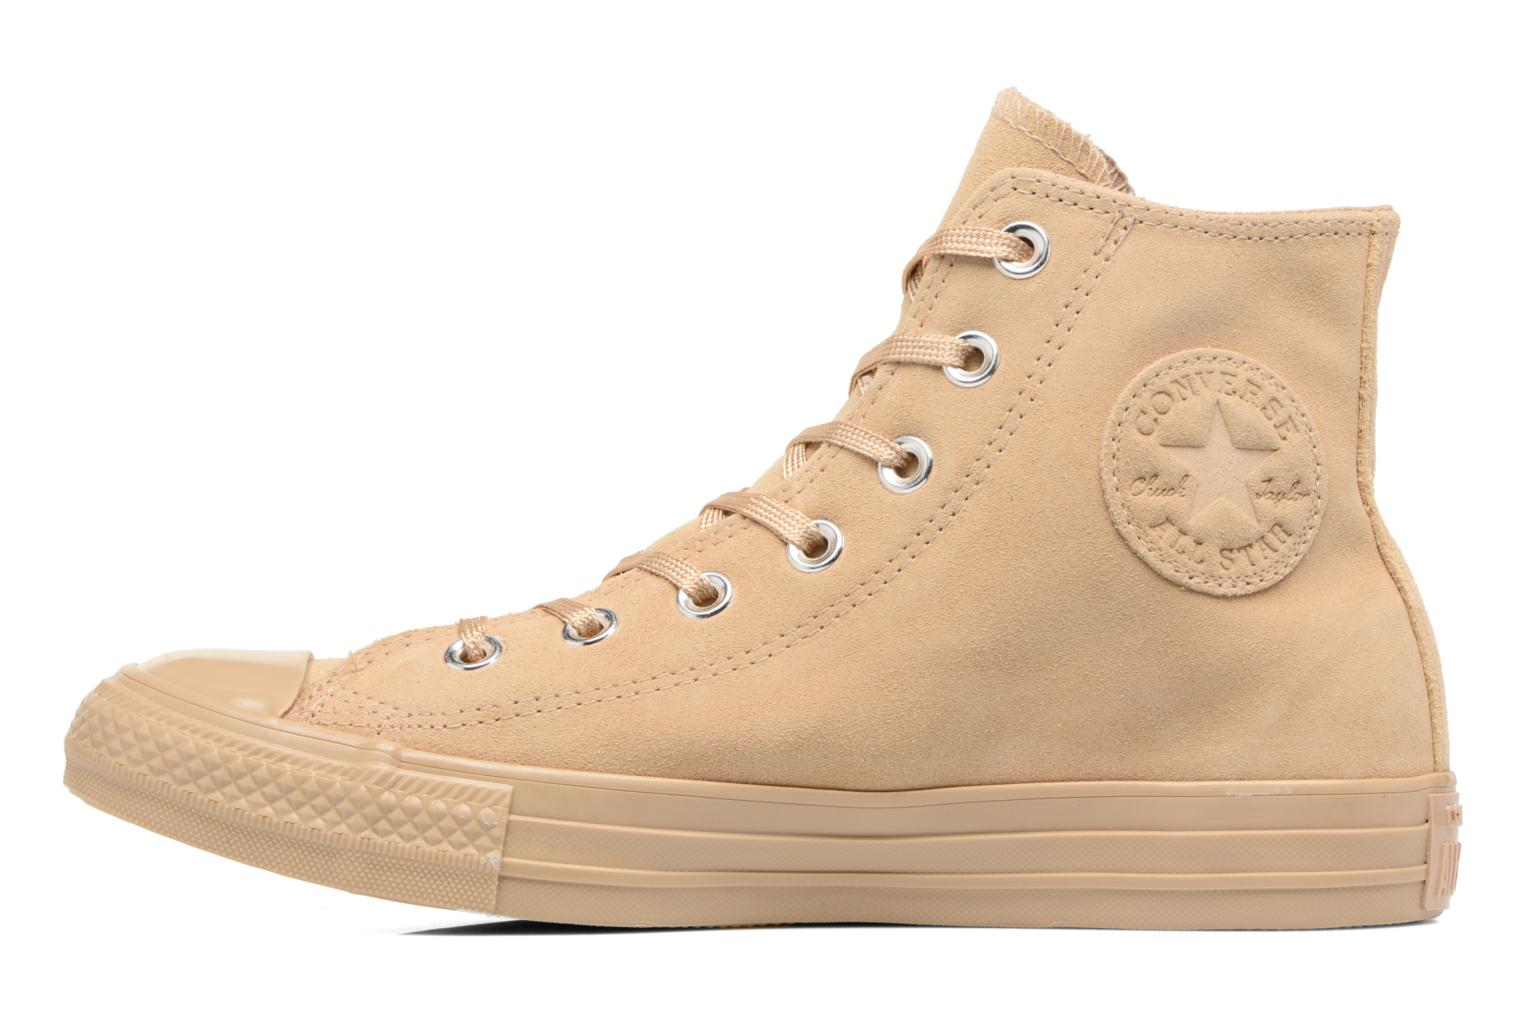 Chuck Taylor All Star Mono Plush Suede Hi Light Fawn/Light Fawn/Light Fawn